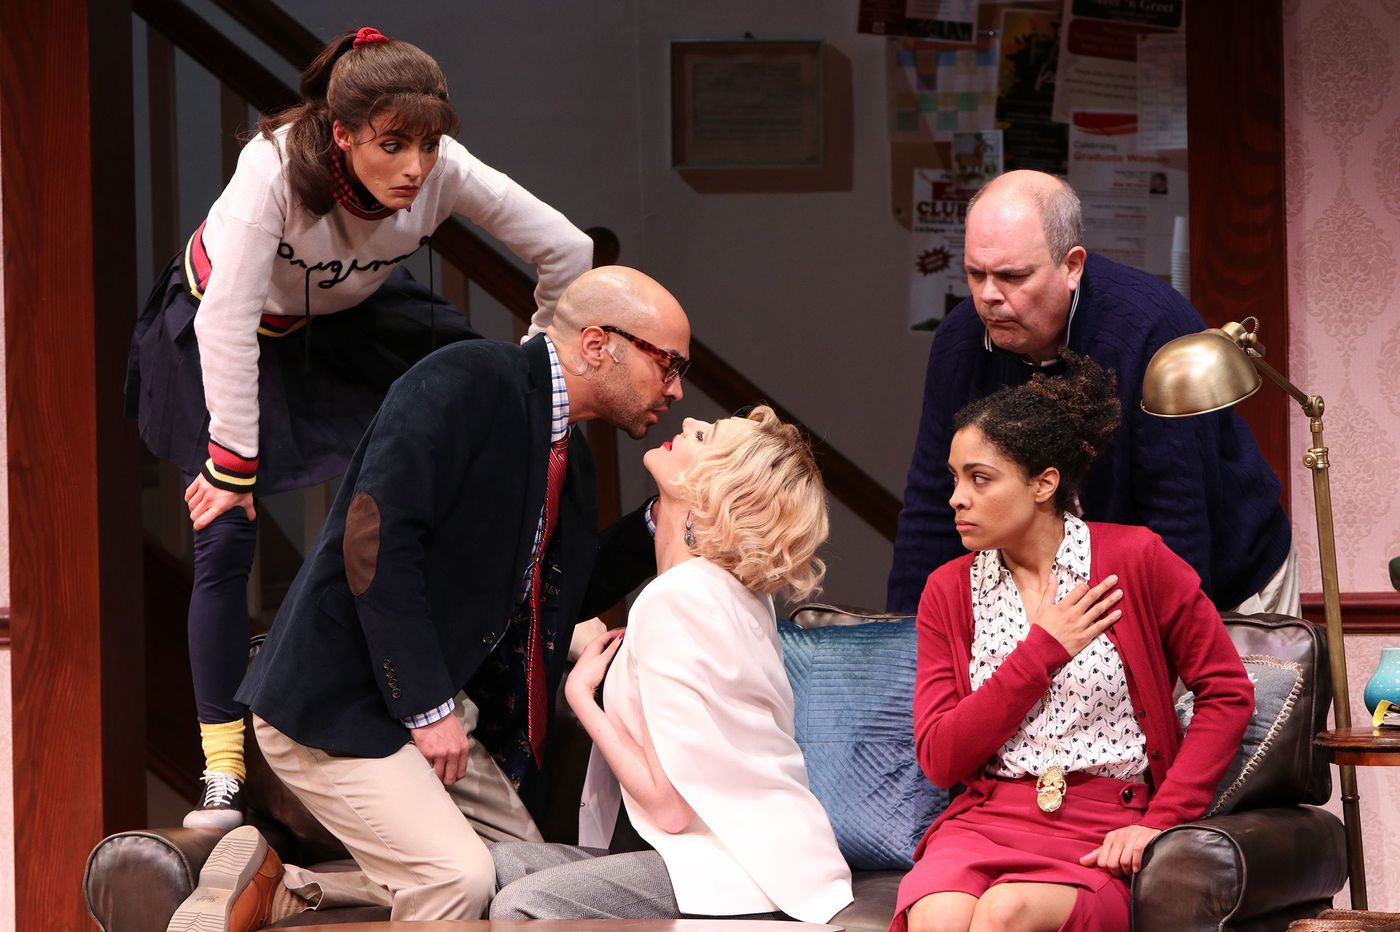 'Gods of Comedy' at McCarter Theatre: Mildly entertaining farce of wacky gods and clueless humans